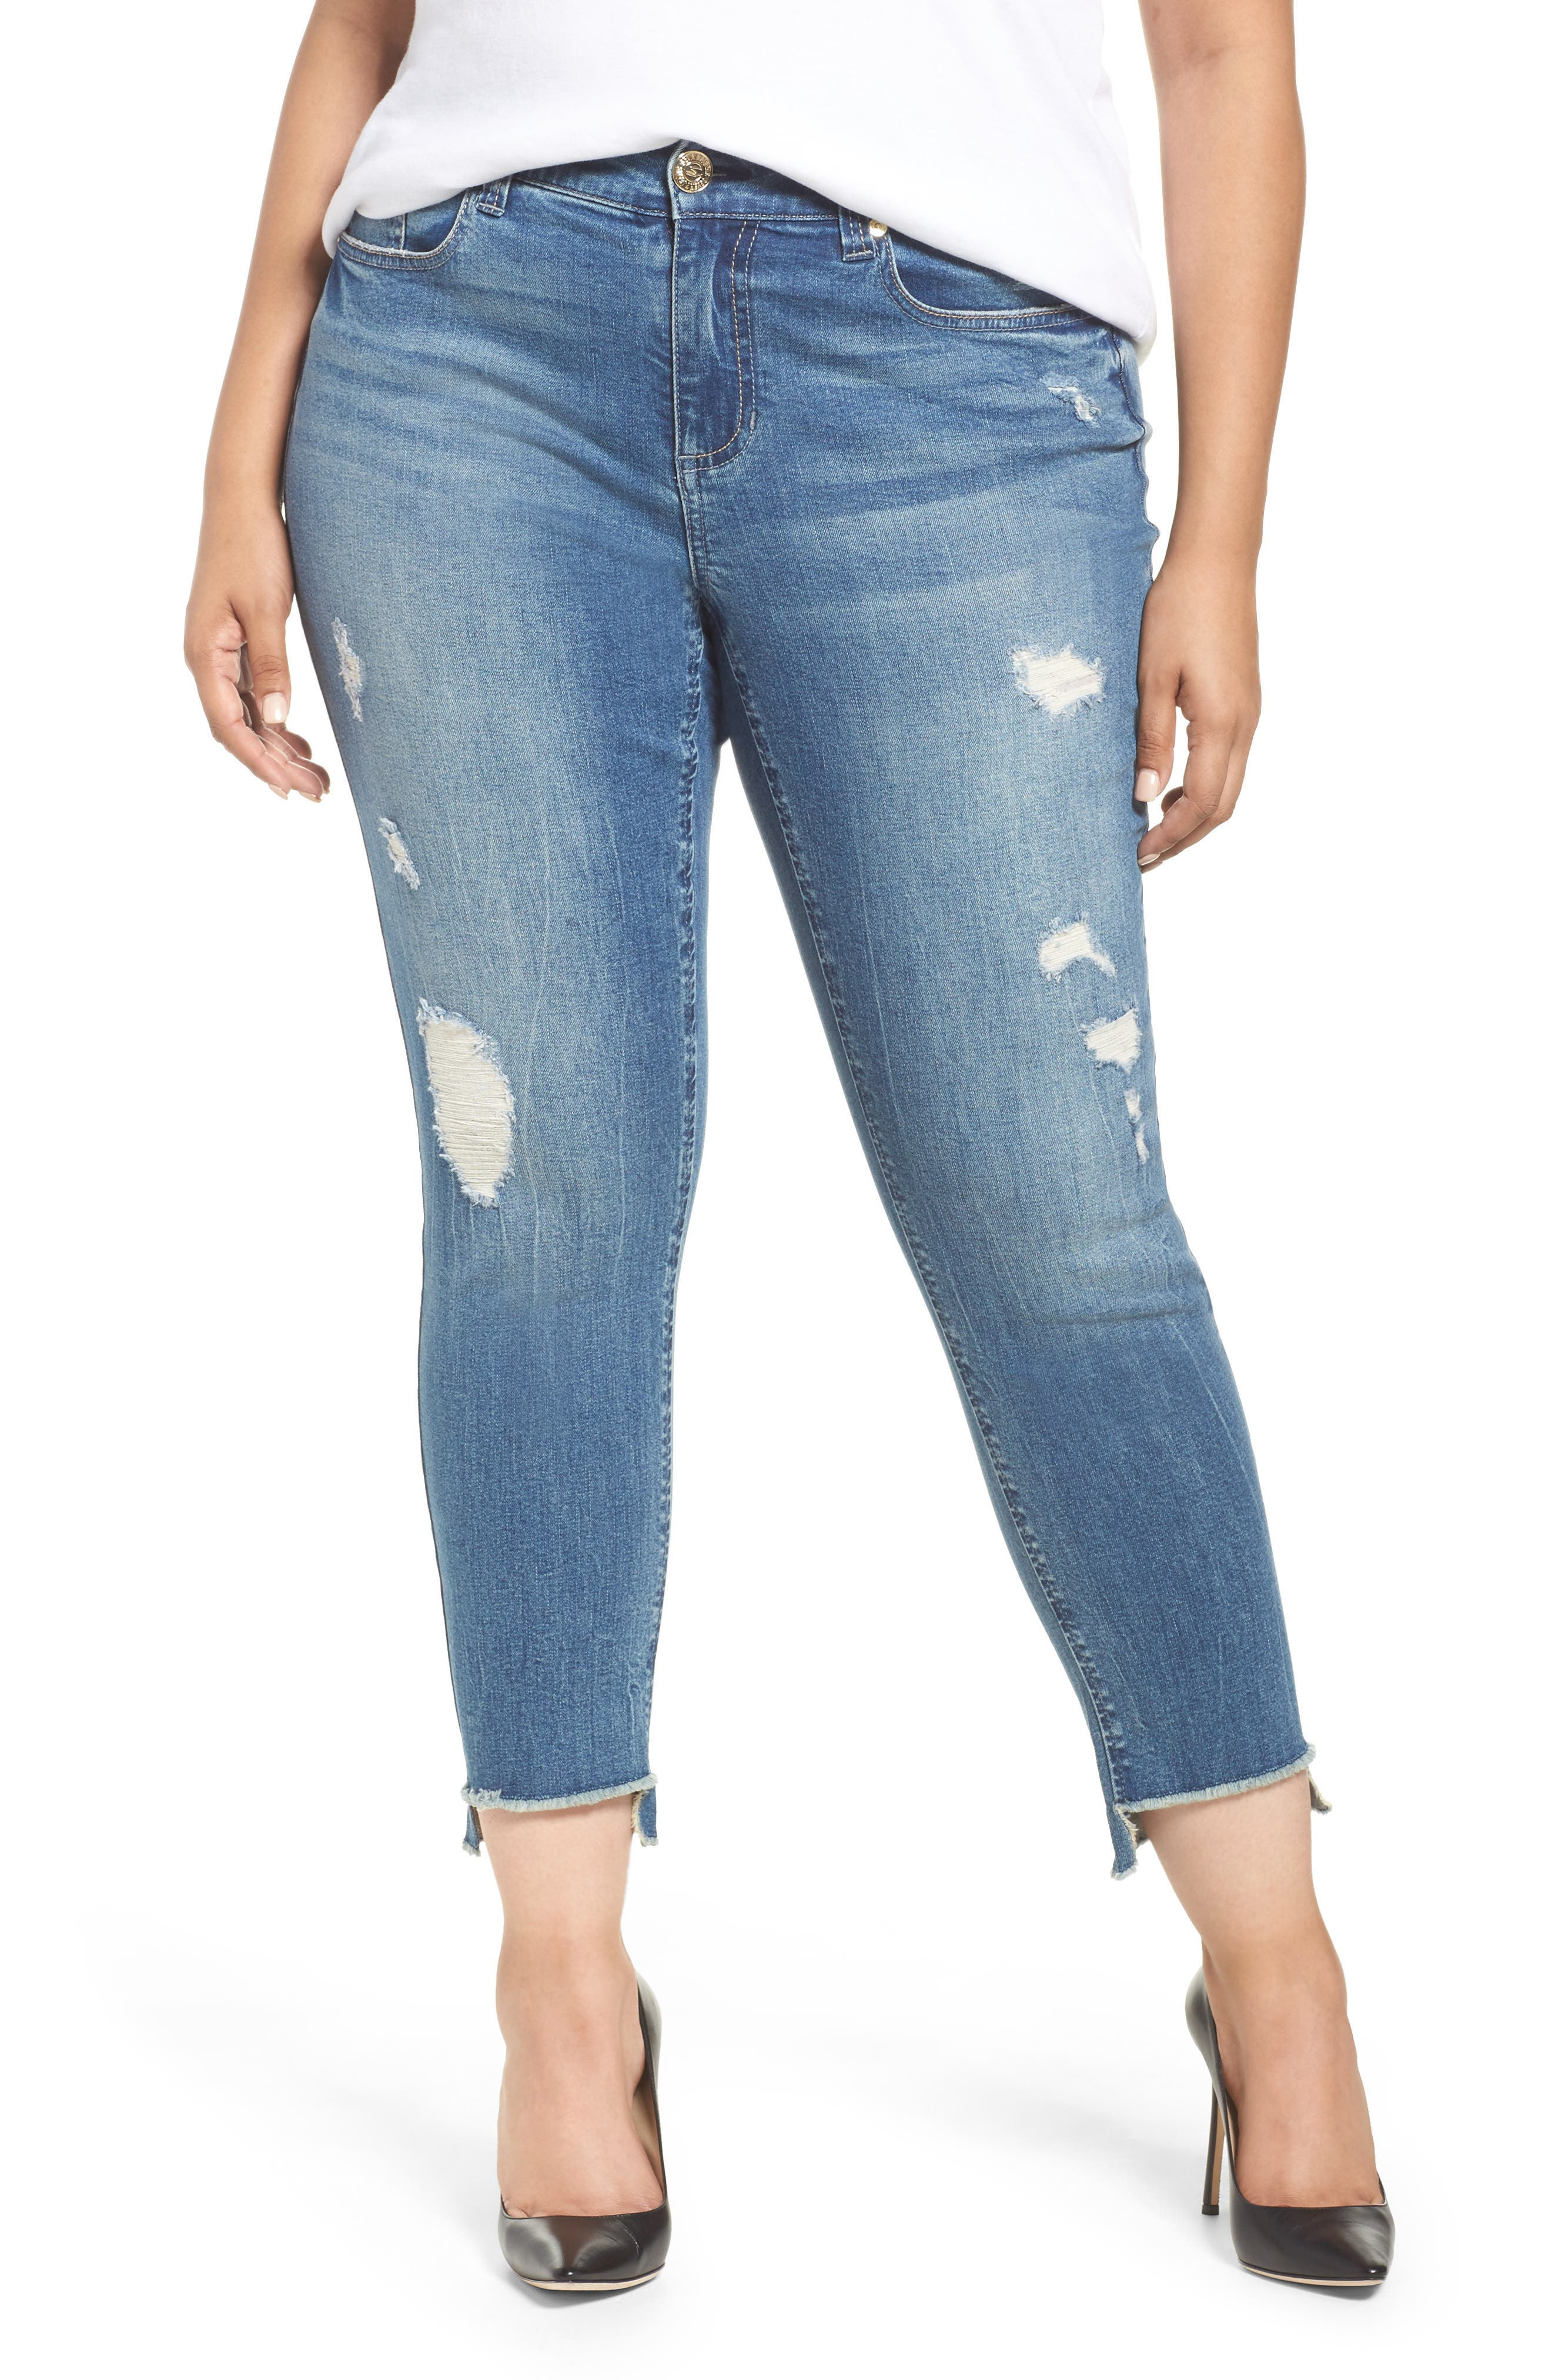 Alternate Image 1 Selected - Seven7 High/Low Ankle Skinny Jeans (Molokai) (Plus Size)